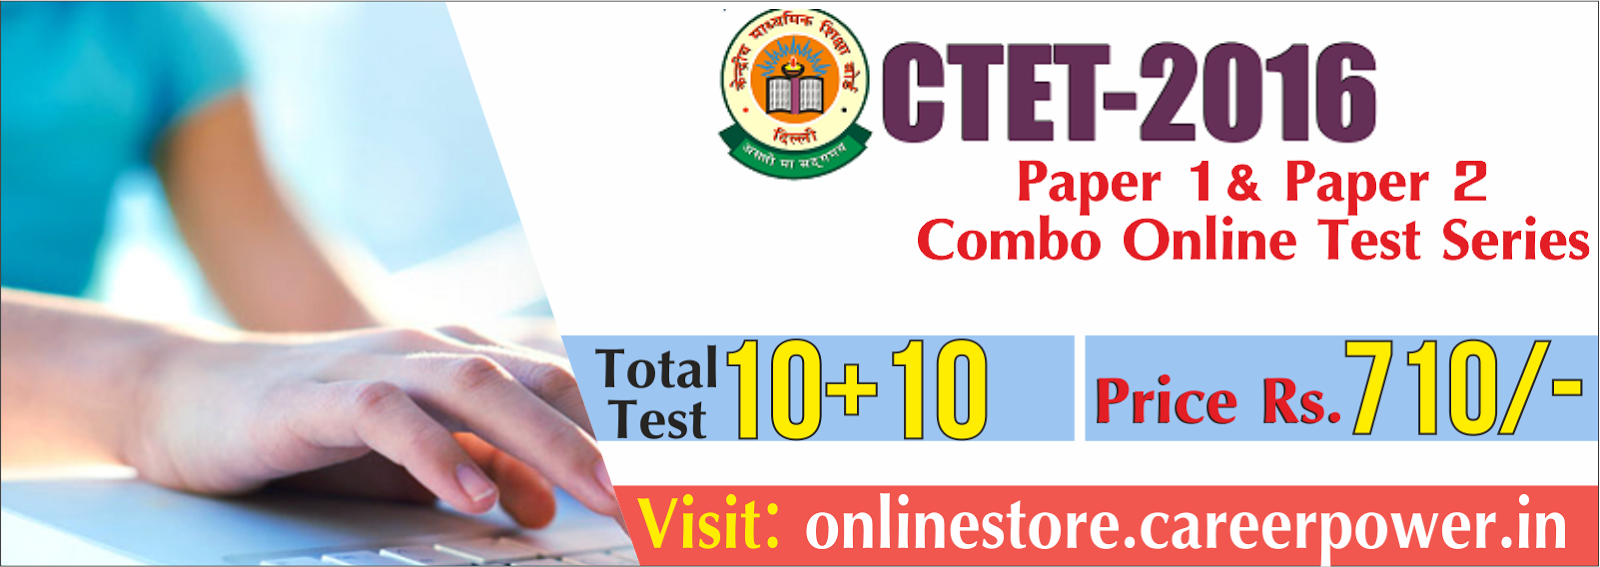 CTET 2016 ONLINE TEST SERIES